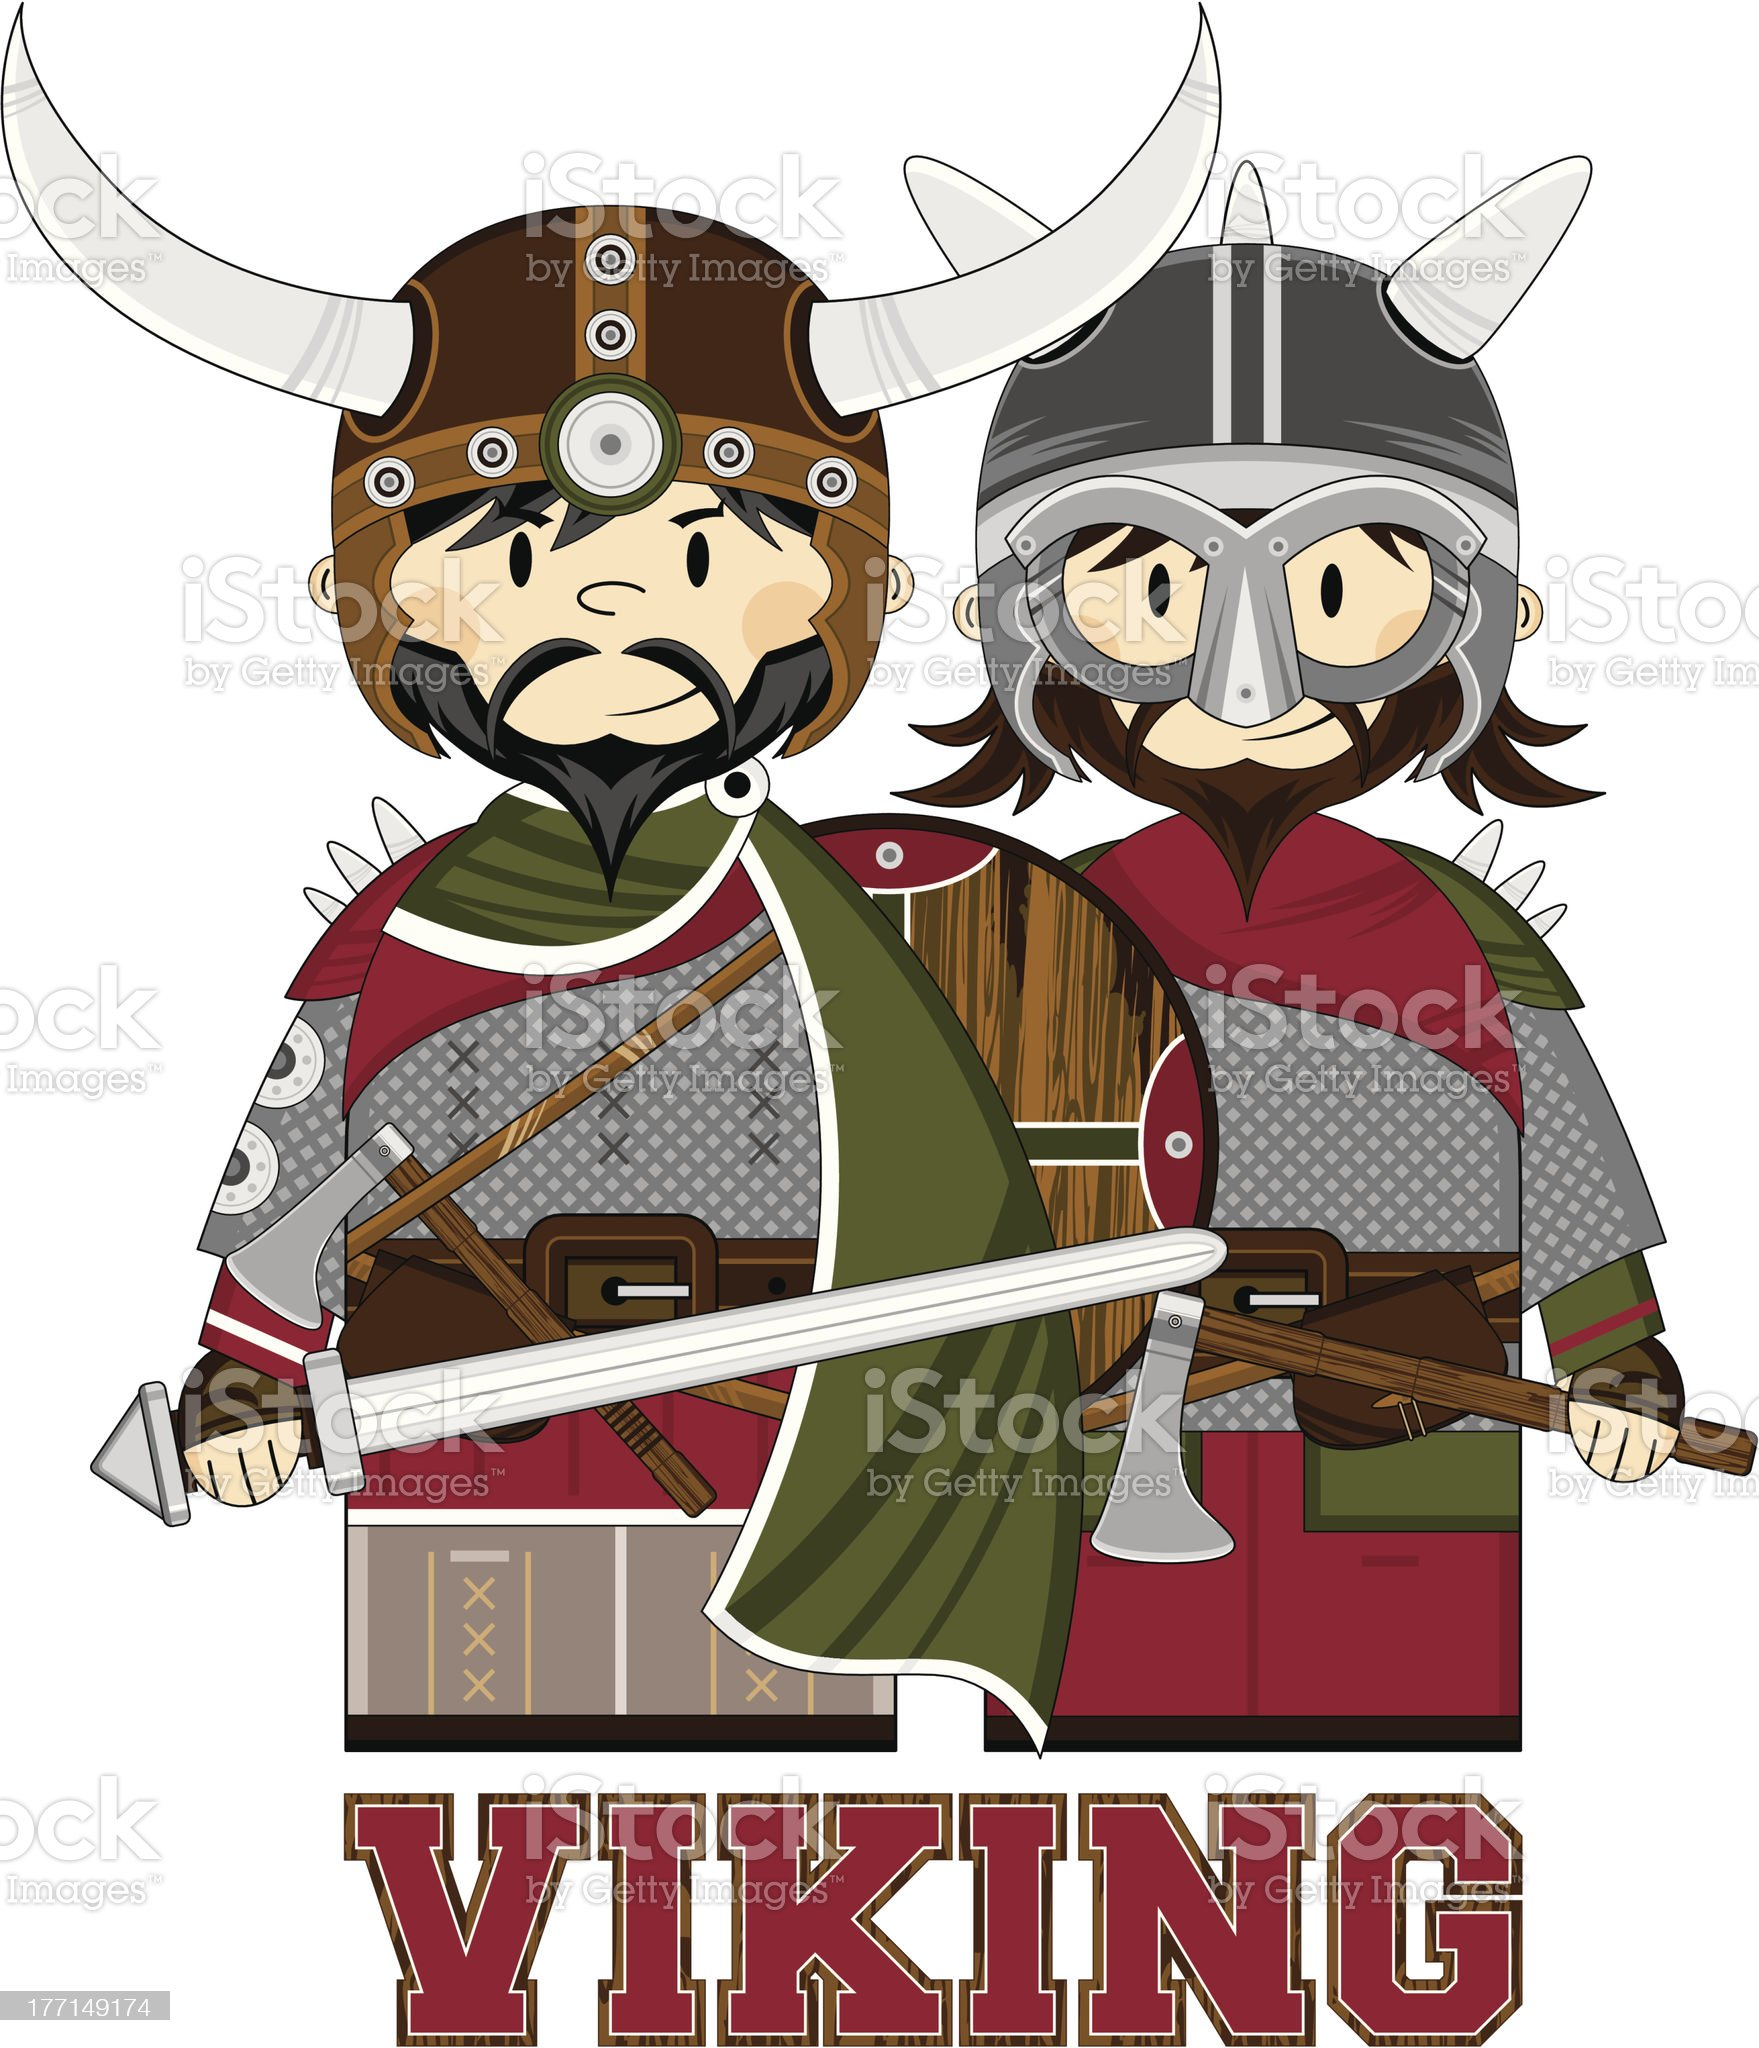 Viking Warrior Learn to Read Illustration royalty-free stock vector art